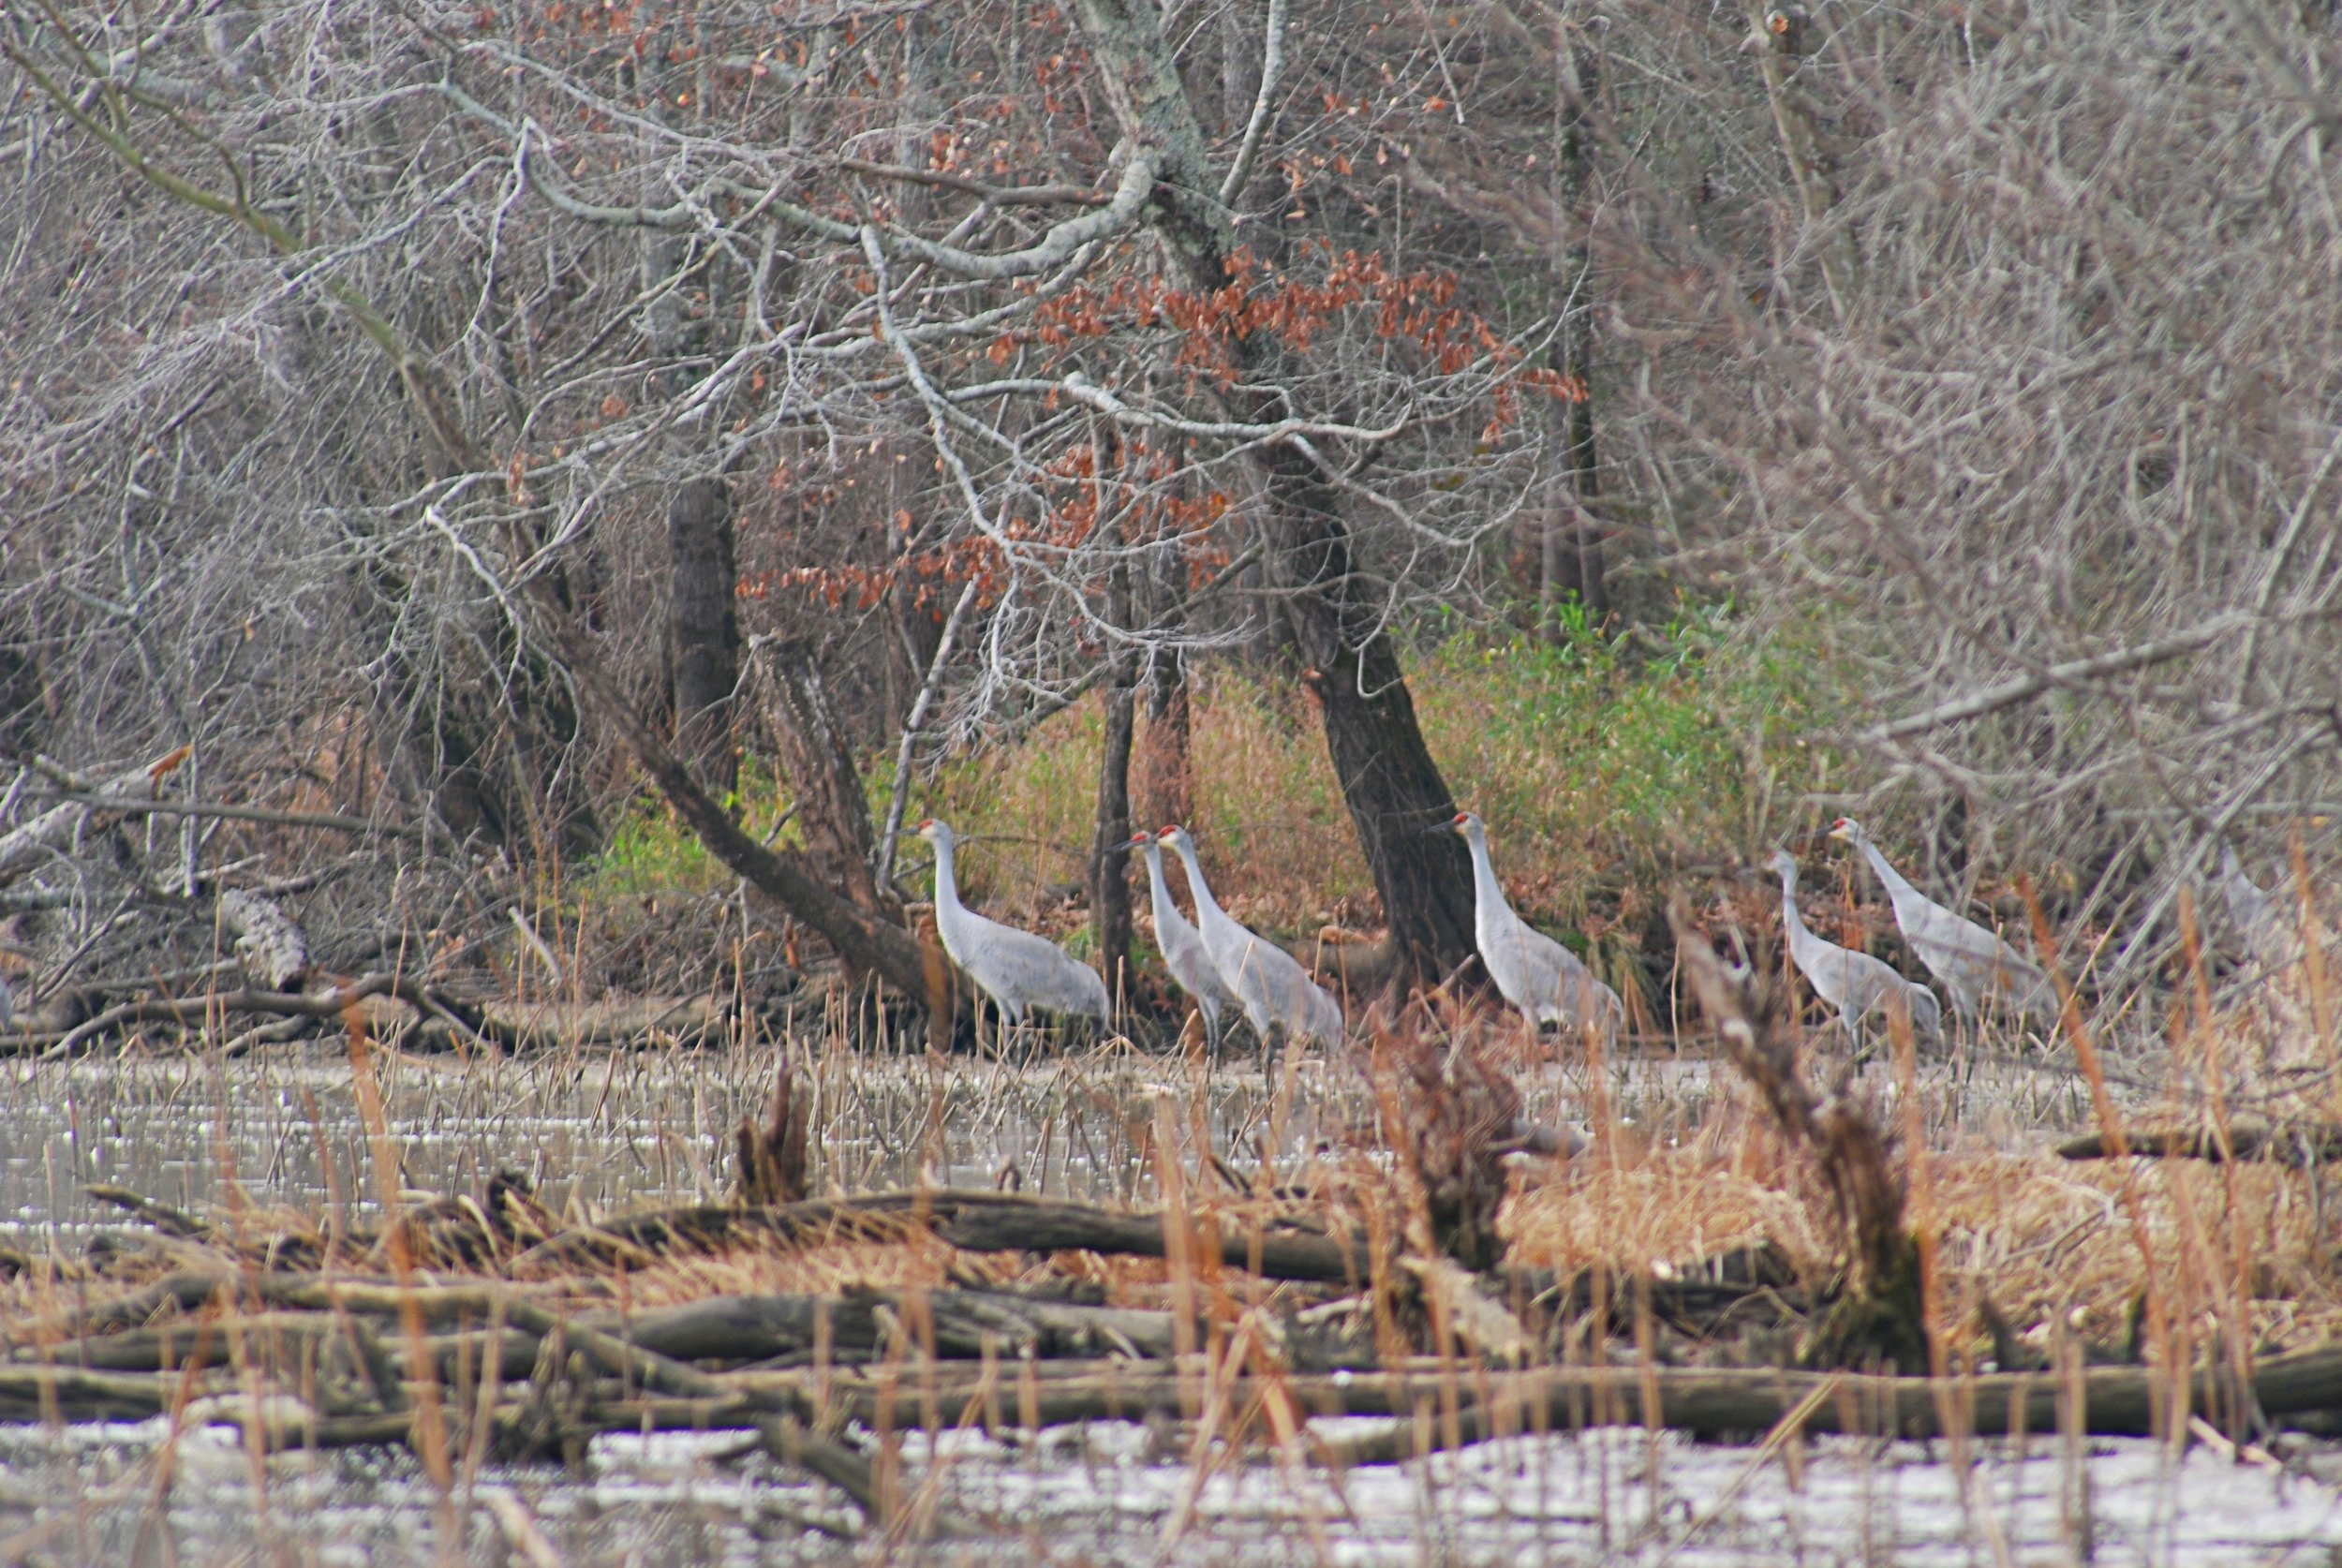 Sandhill cranes gather along the shoreline. Photo: Bob Butters